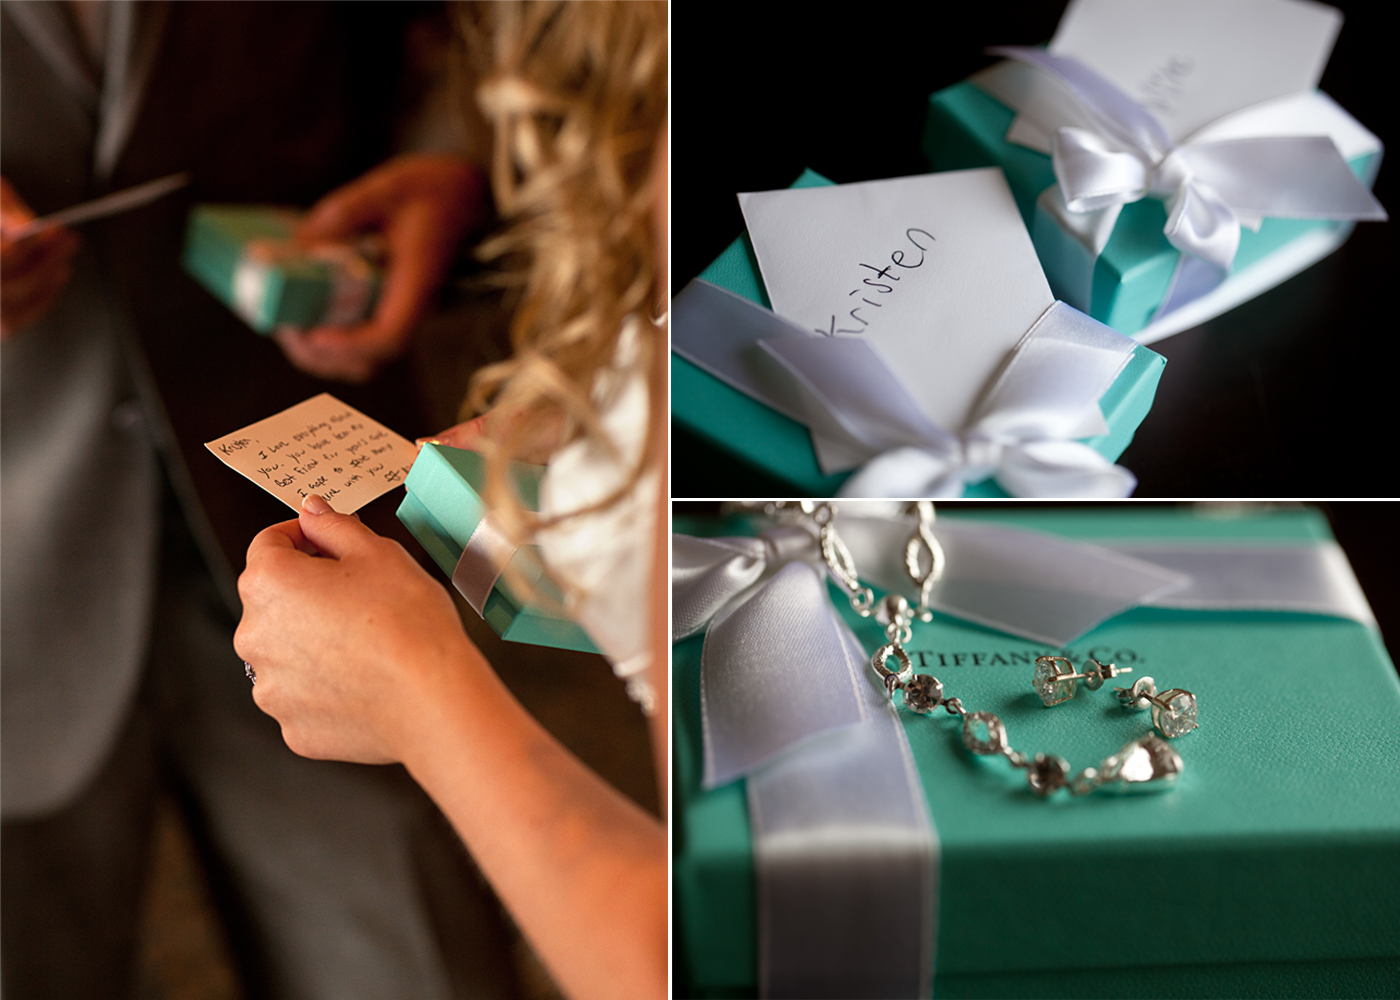 ... bridal bracelet, bride and groom exchange wedding gifts OneWed.com